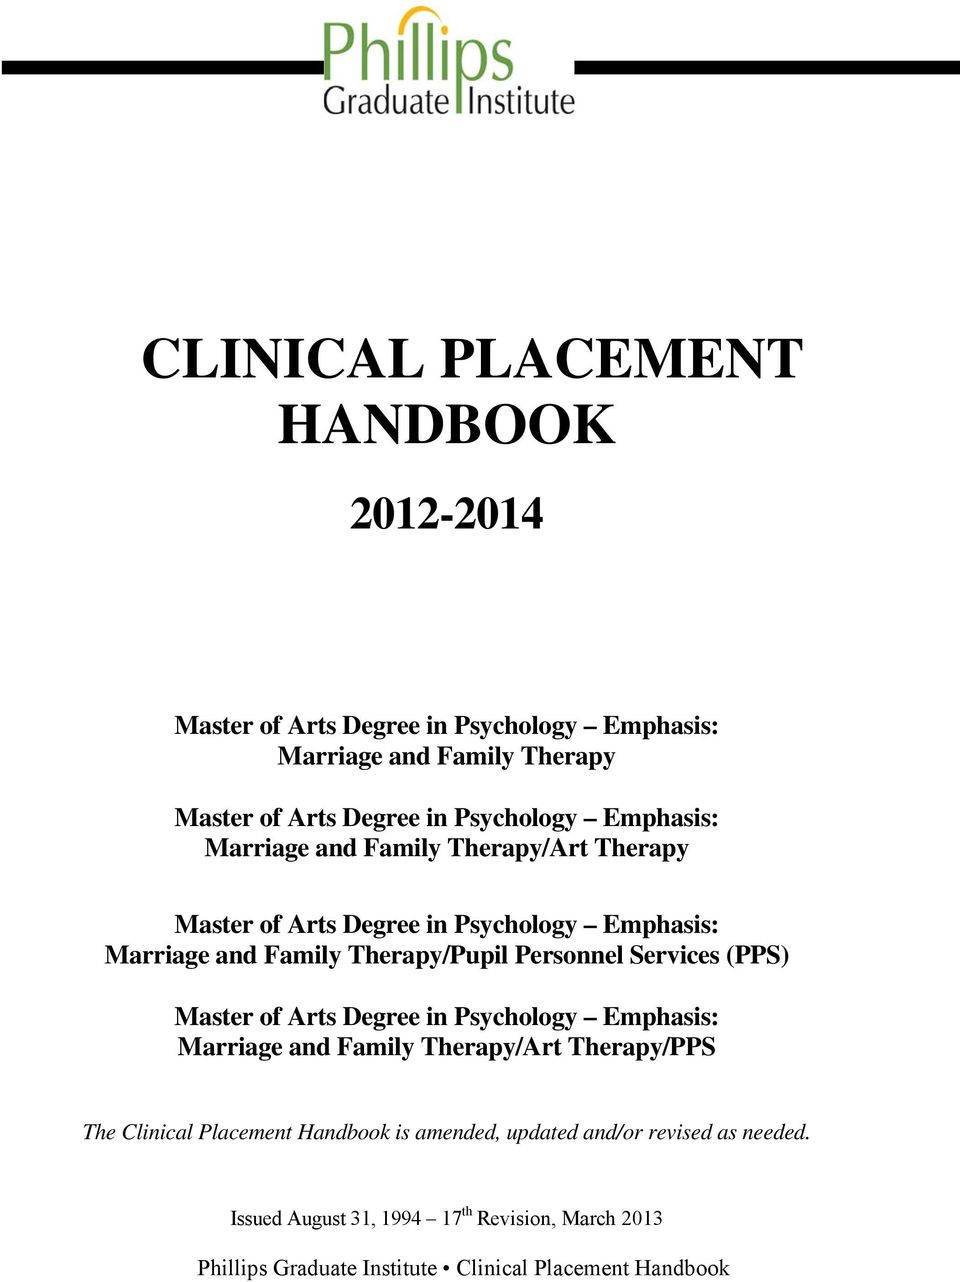 Personnel Services (PPS) Master of Arts Degree in Psychology Emphasis: Marriage and Family Therapy/Art Therapy/PPS The Clinical Placement